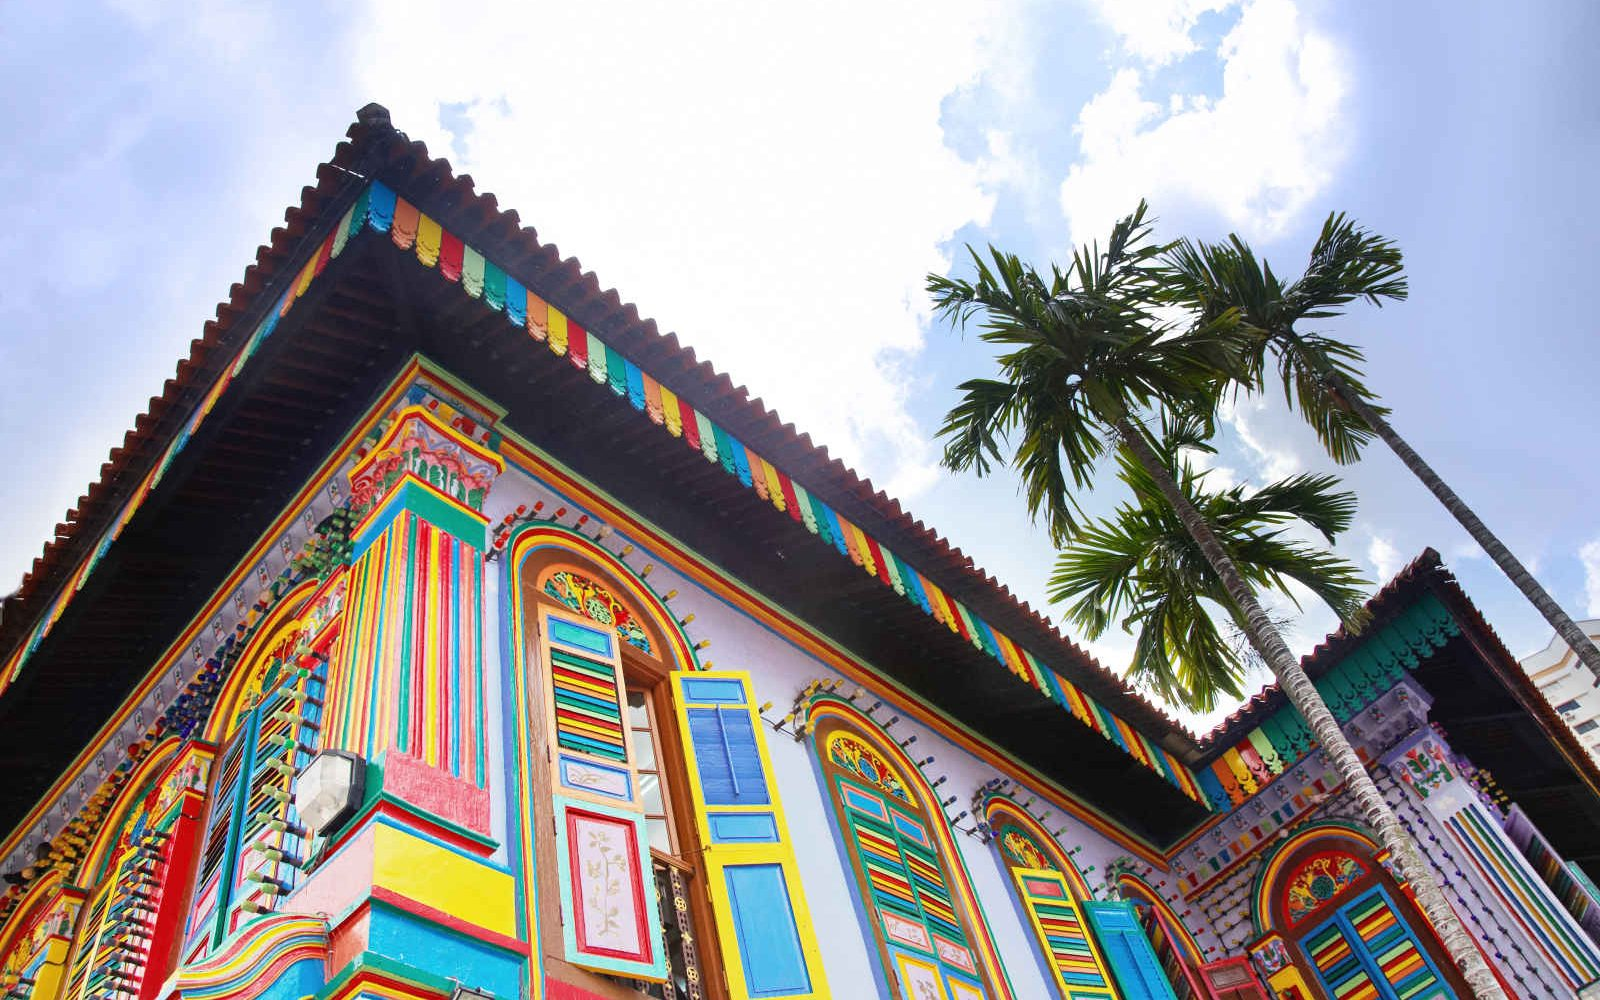 Maison dans le quartier de Little India, Singapour